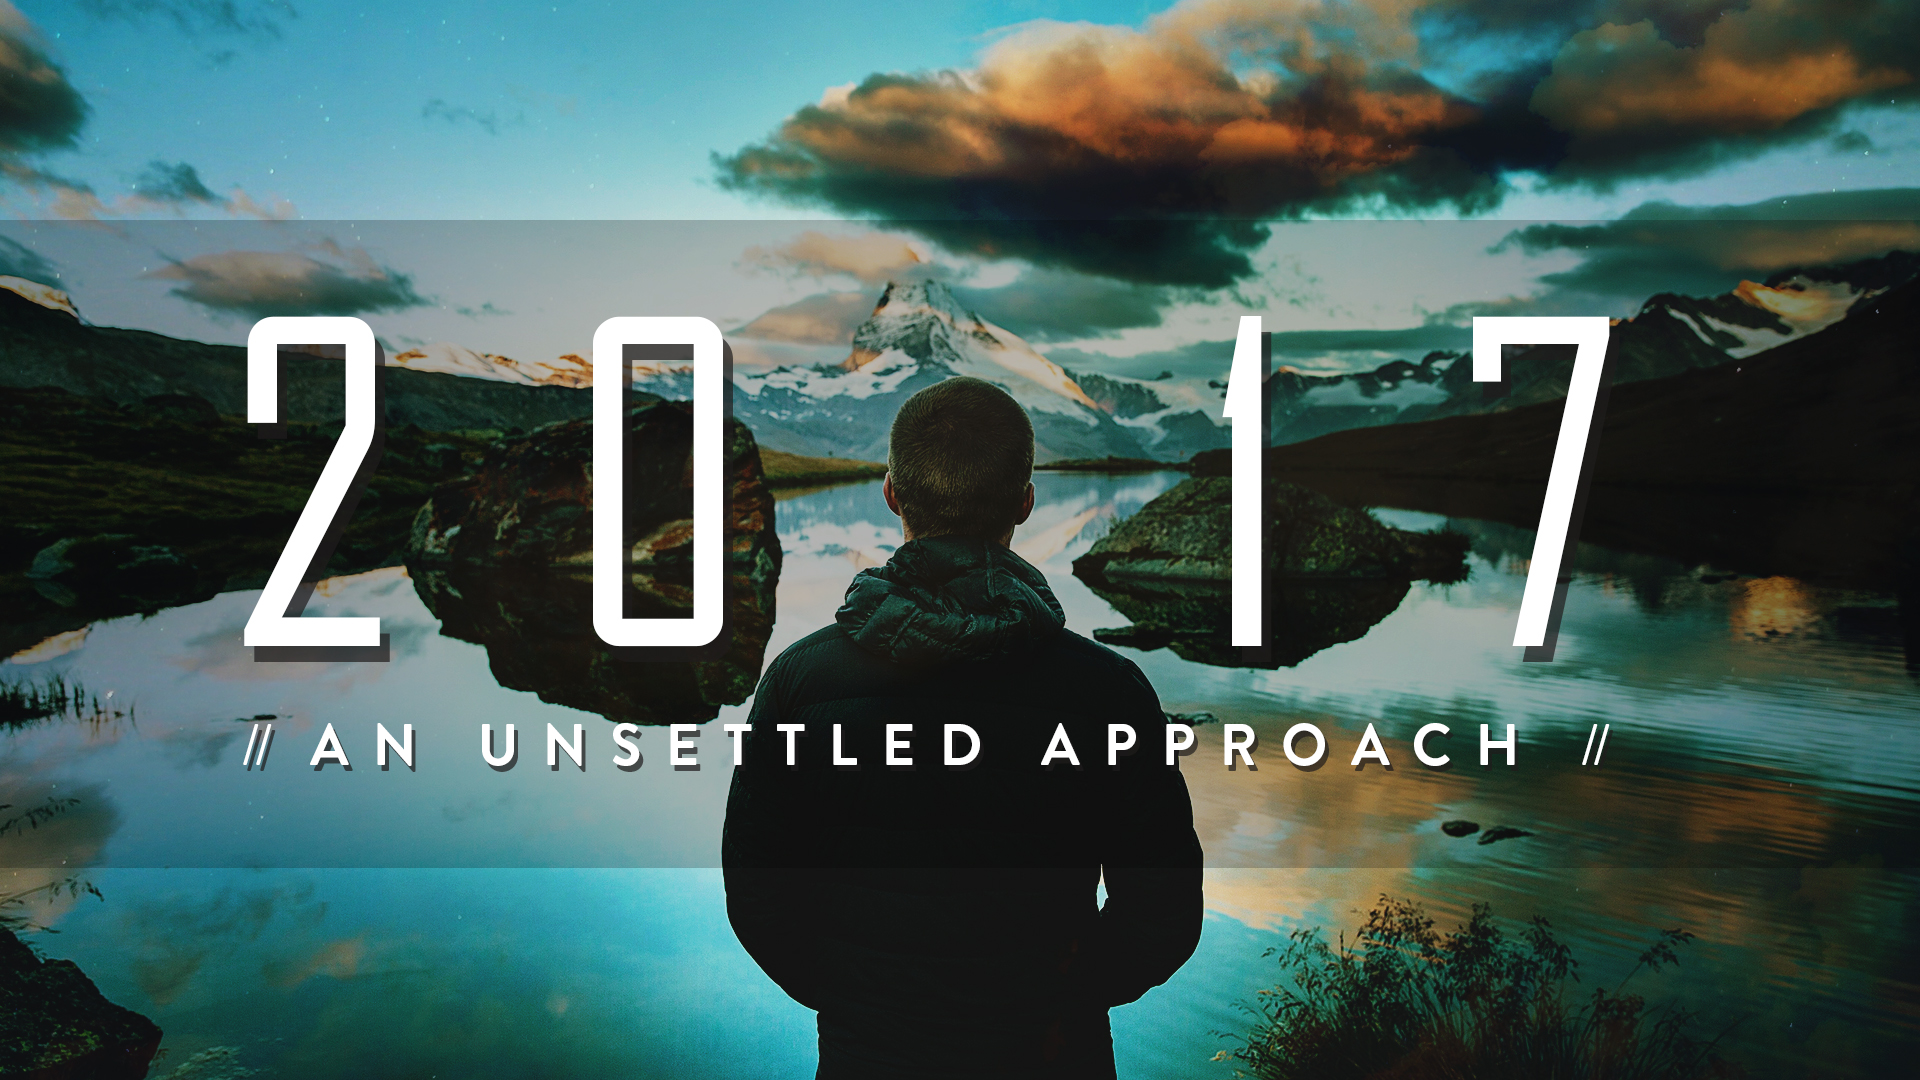 An Unsettled Approach - January 2017